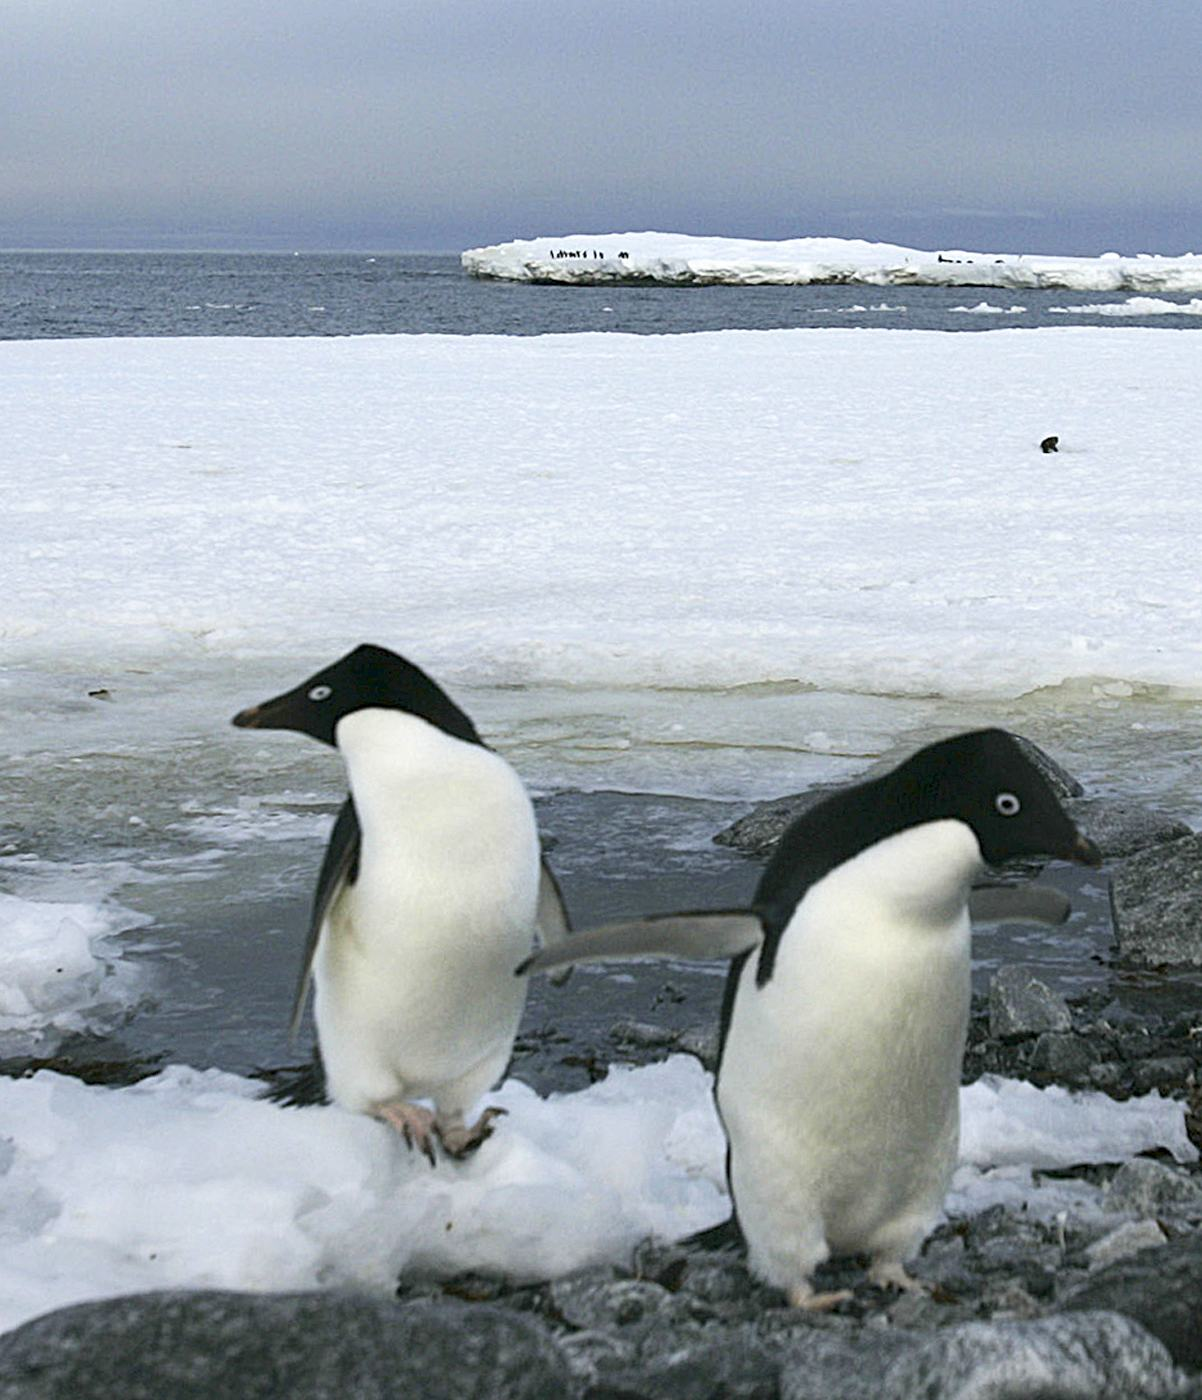 Two Adelie penguins rest on the shores of Commonwealth Bay in Antarctica